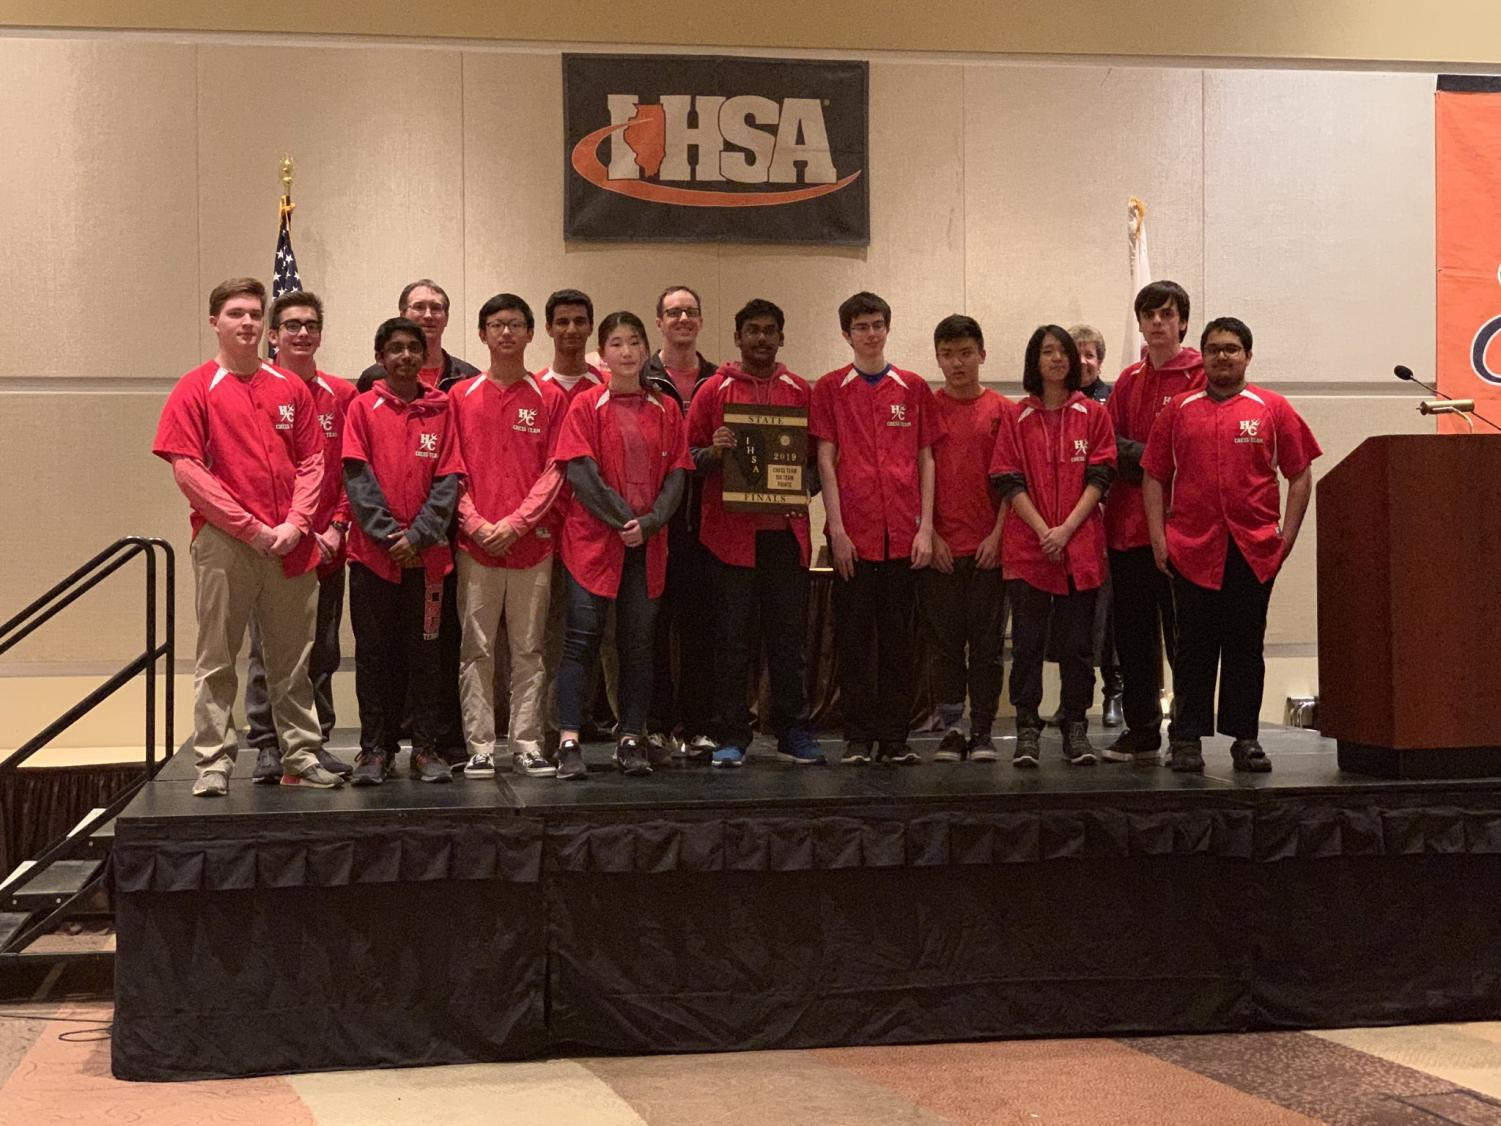 The chess team tied with five other schools for second place. After tiebreakers ,they placed seventh overall at the state tournament.